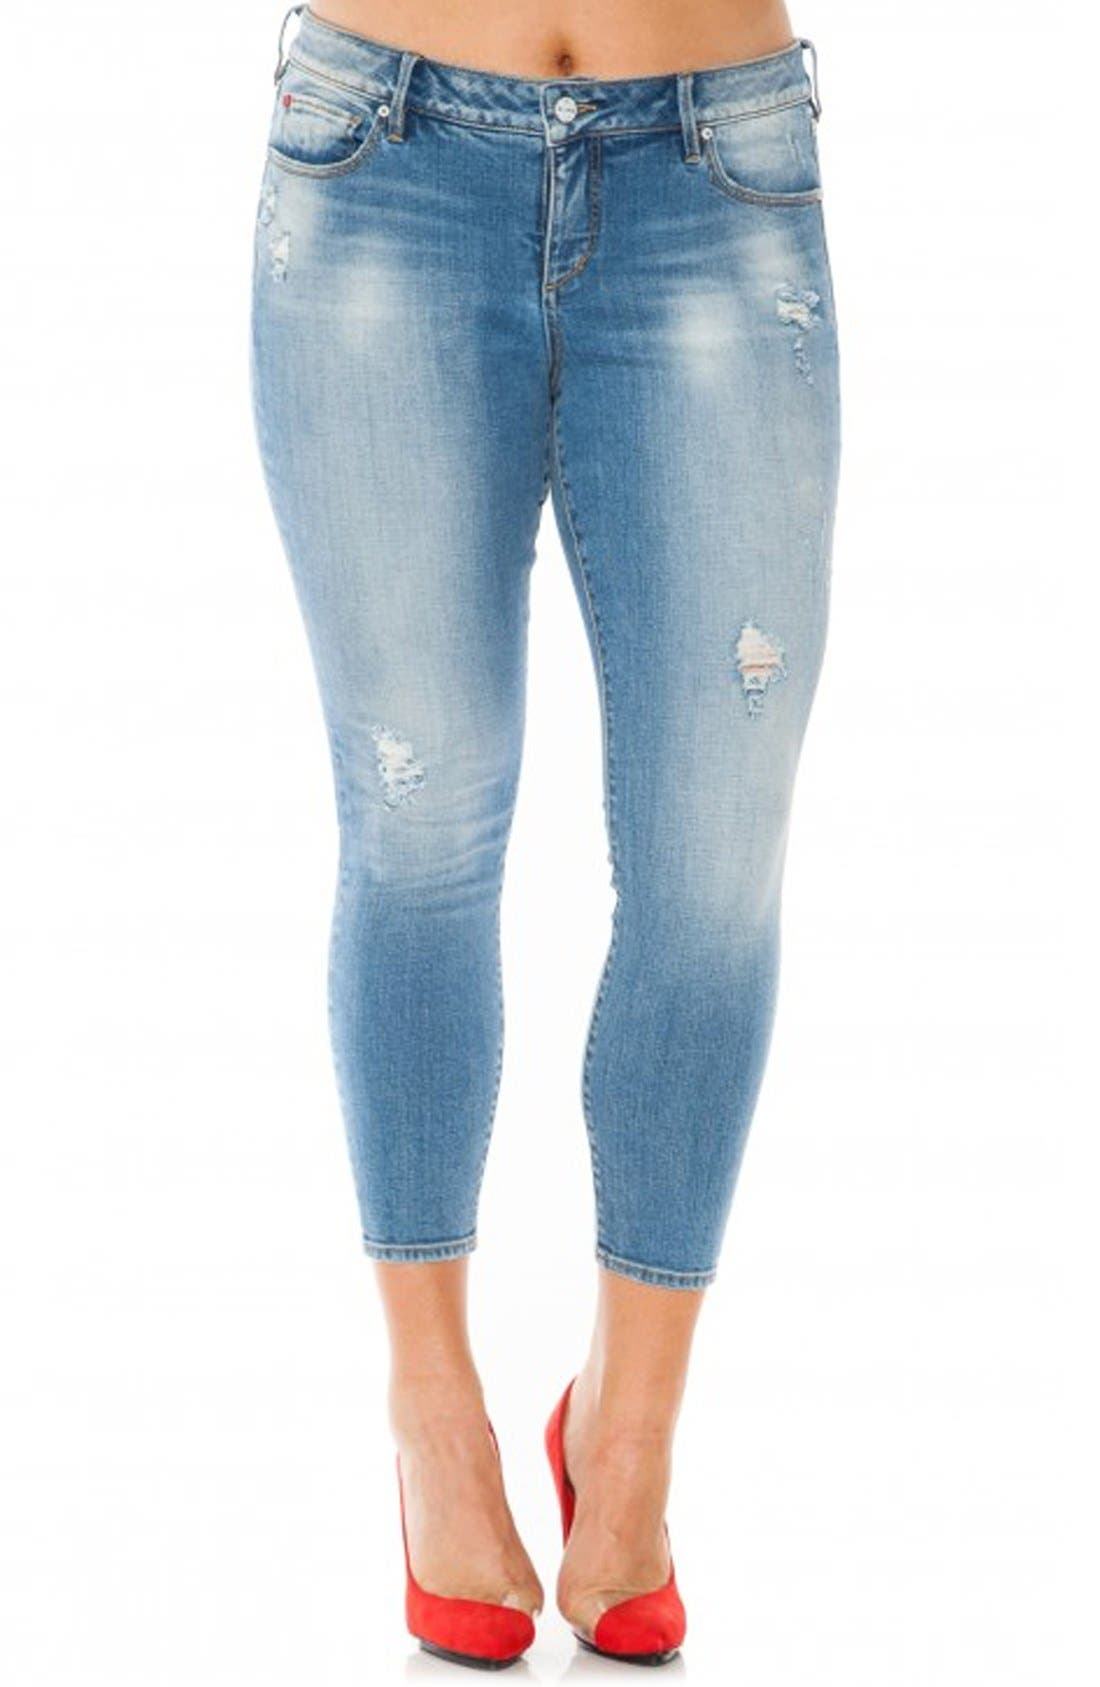 Main Image - SLINK Jeans Distressed Stretch Ankle Skinny Jeans (Samantha) (Plus Size)